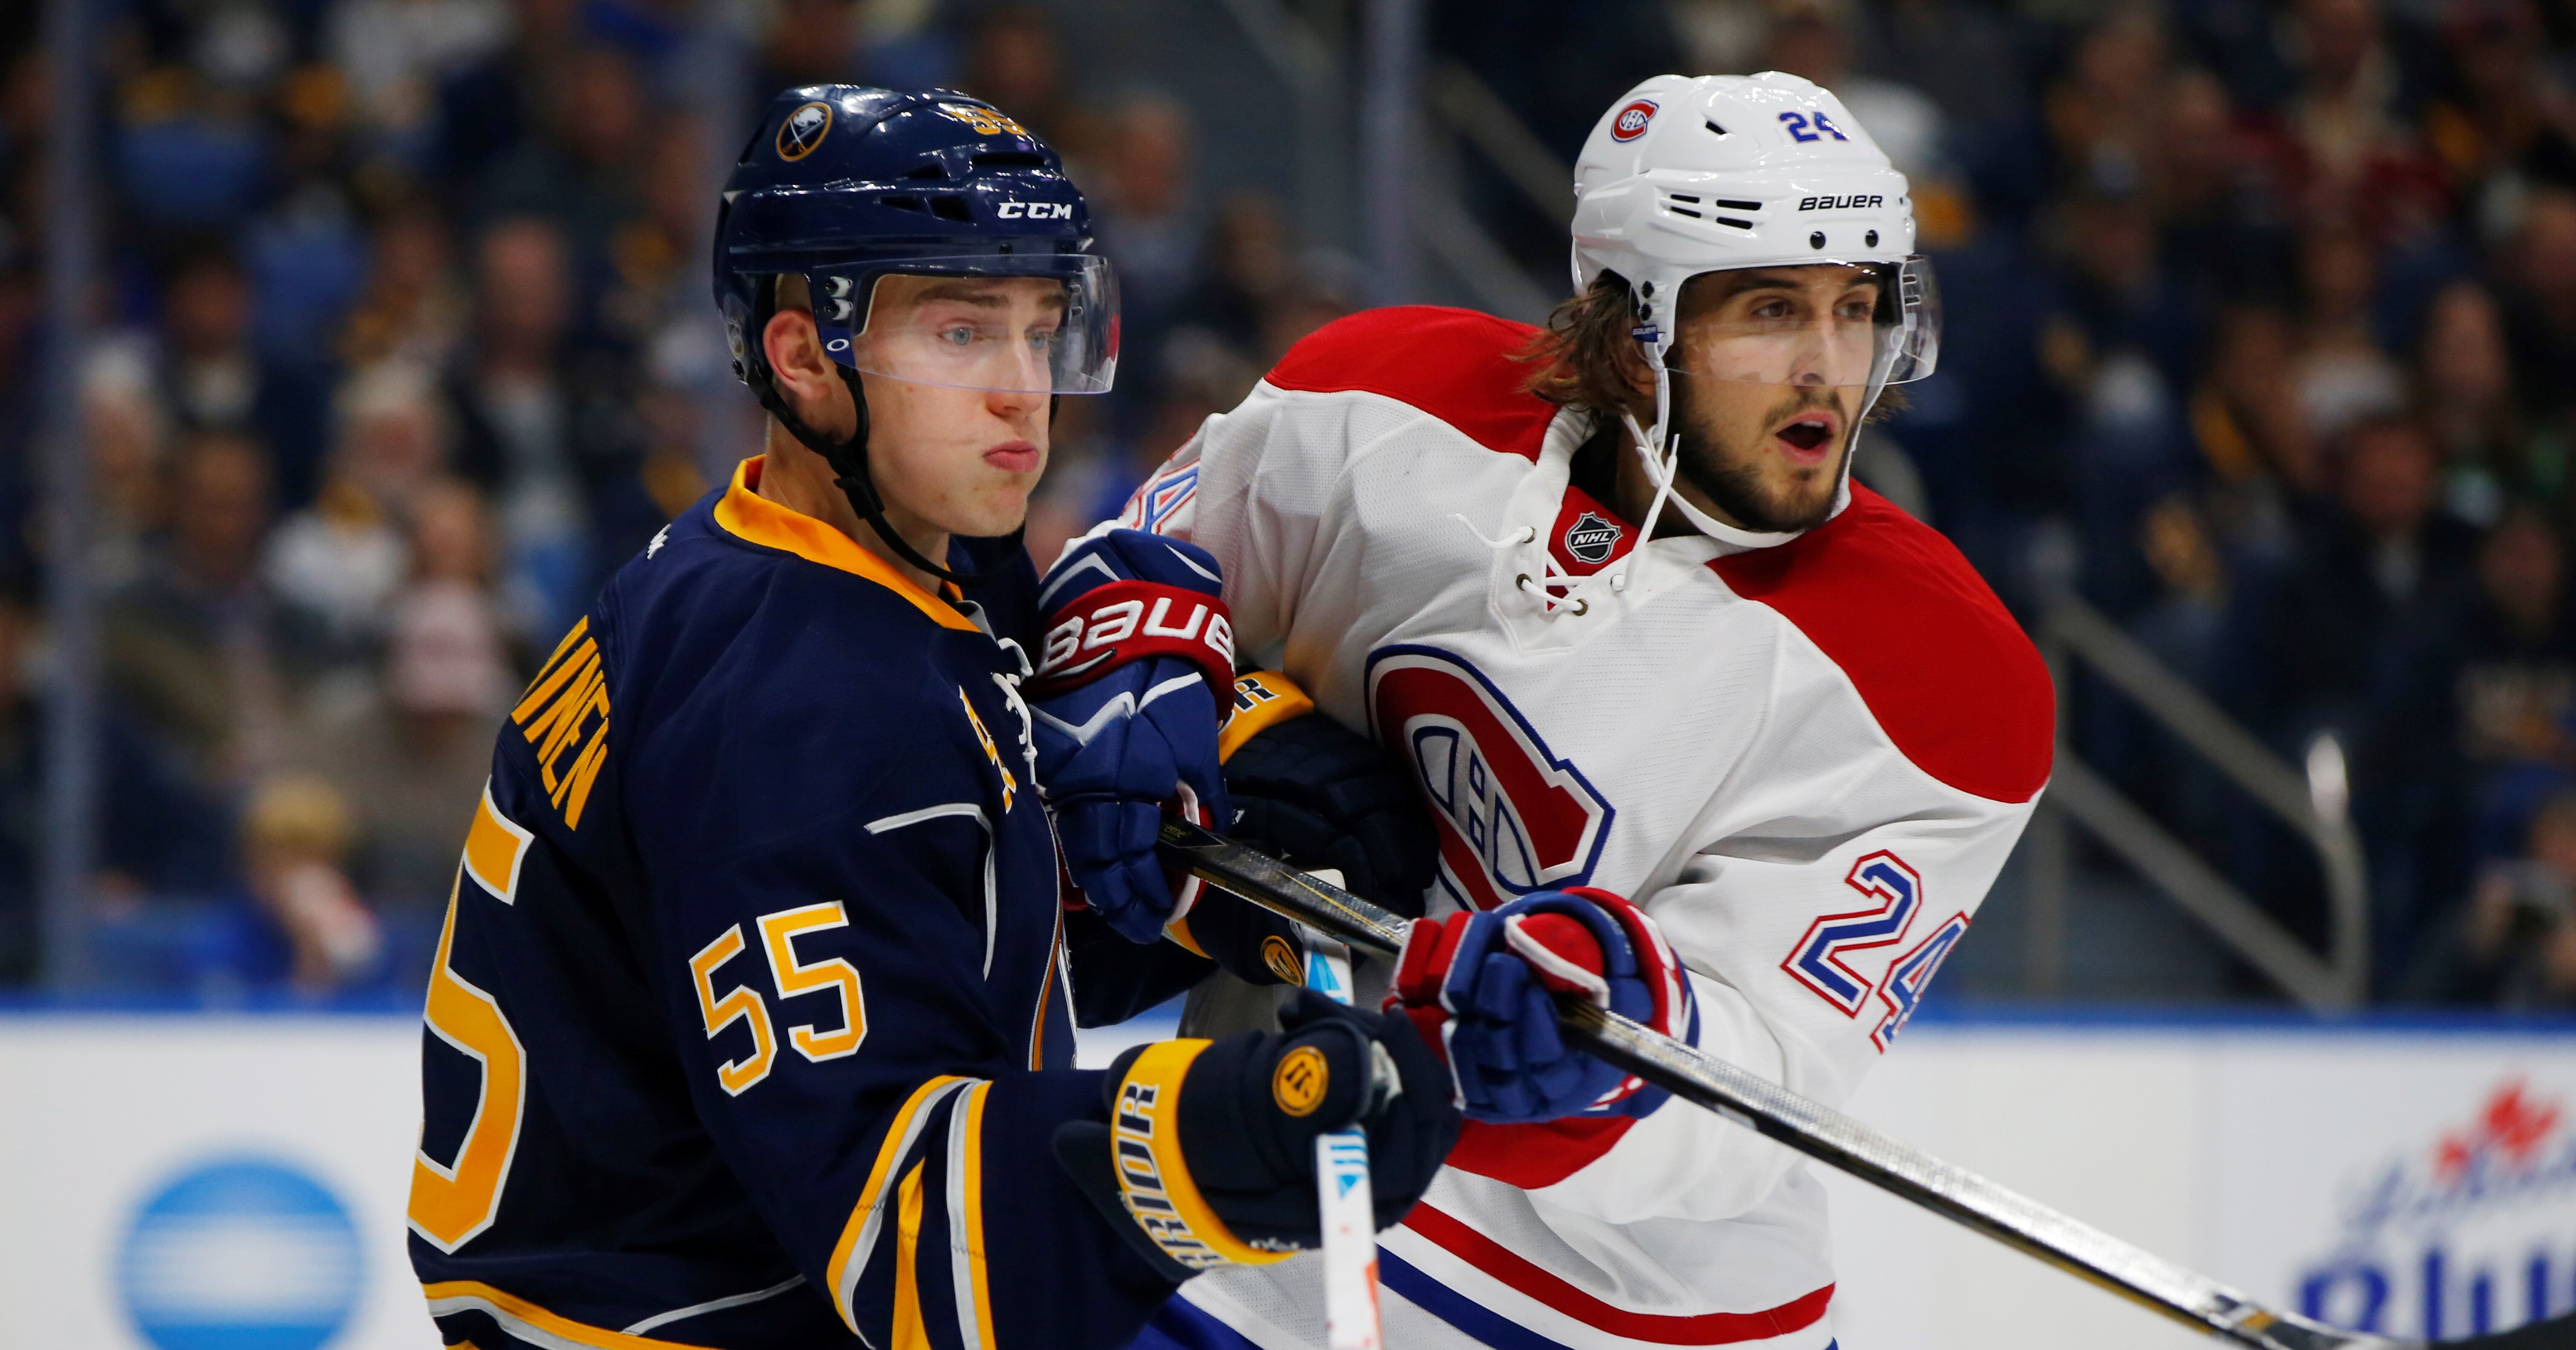 Buffalo Sabres Rasmus Ristolainen and Montreal Canadiens Phillip Danault battle for postion during second period action at KeyBank Center on Thursday, Oct. 13, 2016.(Harry Scull Jr./Buffalo News)